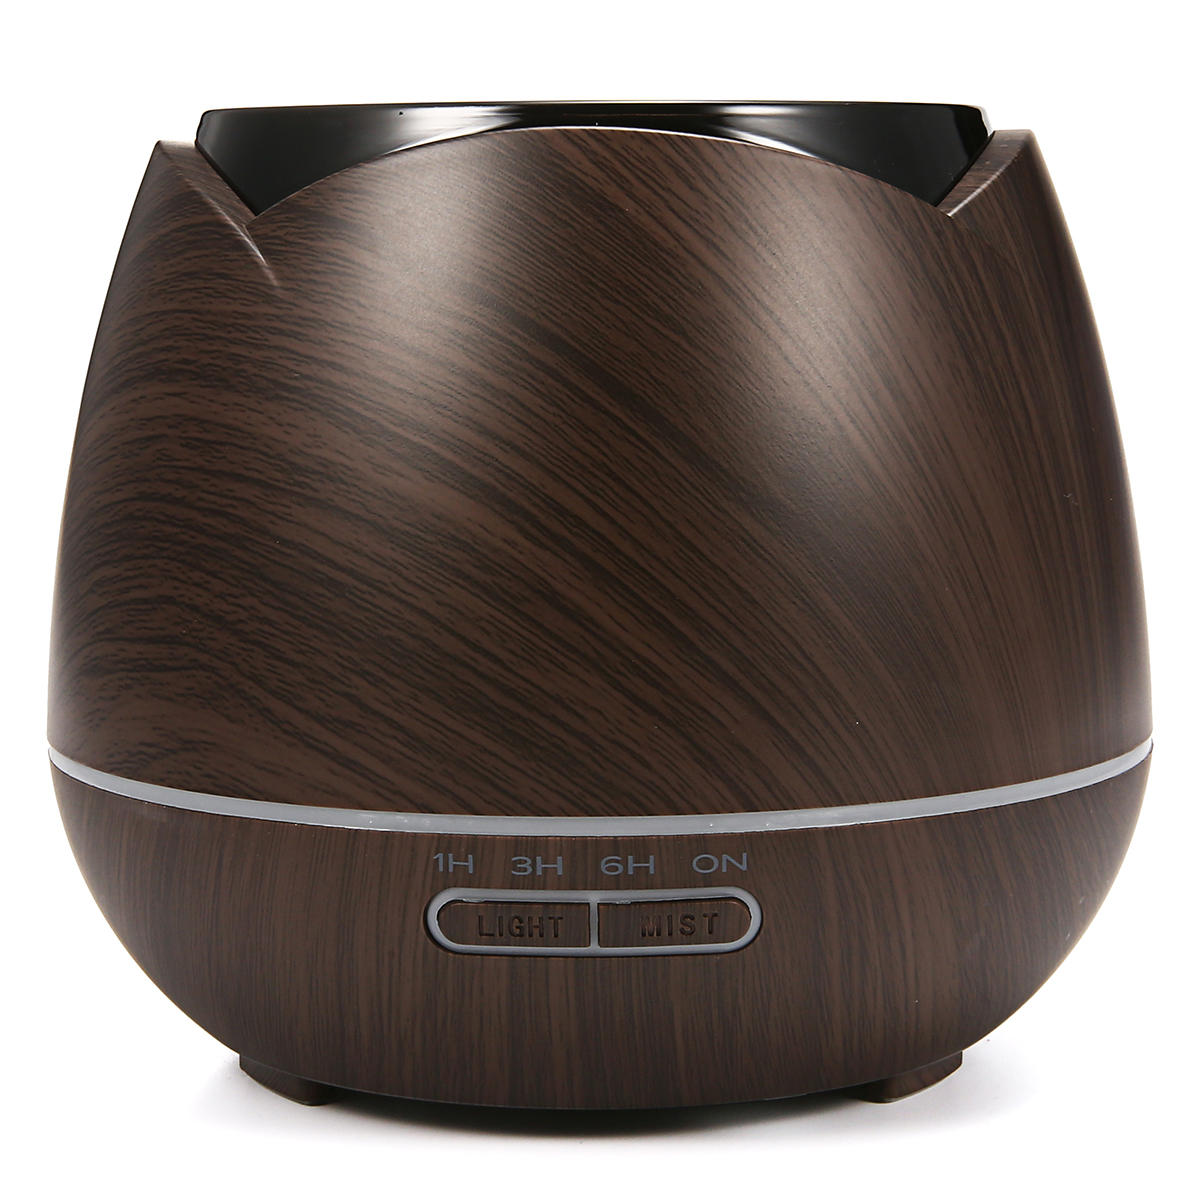 Luckyfine 7Color Light 400ML Wood Grain Aromatherapy Diffuser Portable Ultrasonic Cool Mist Humidifier